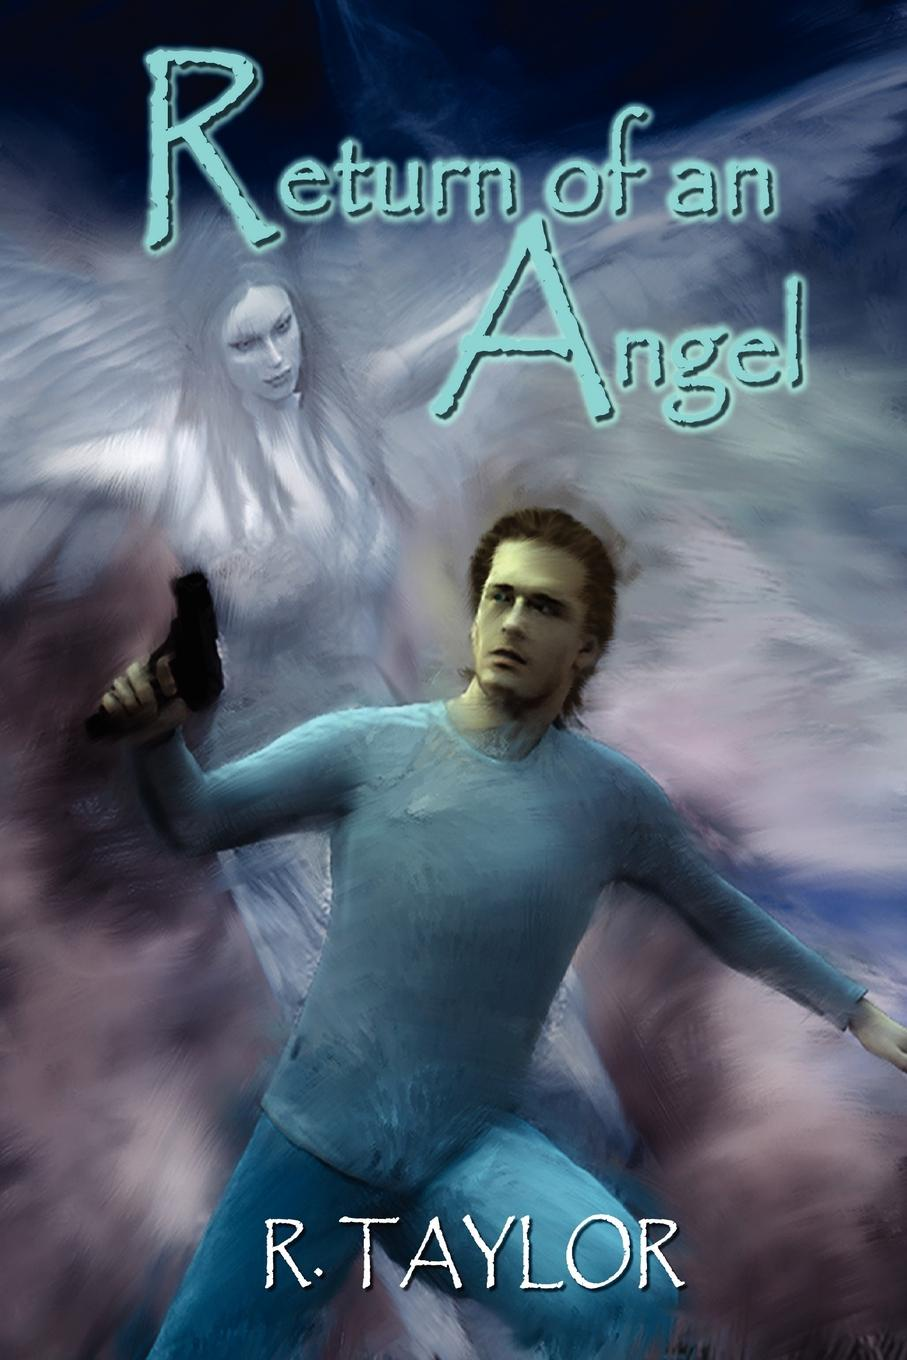 R. Taylor Return of an Angel in the arms of an angel